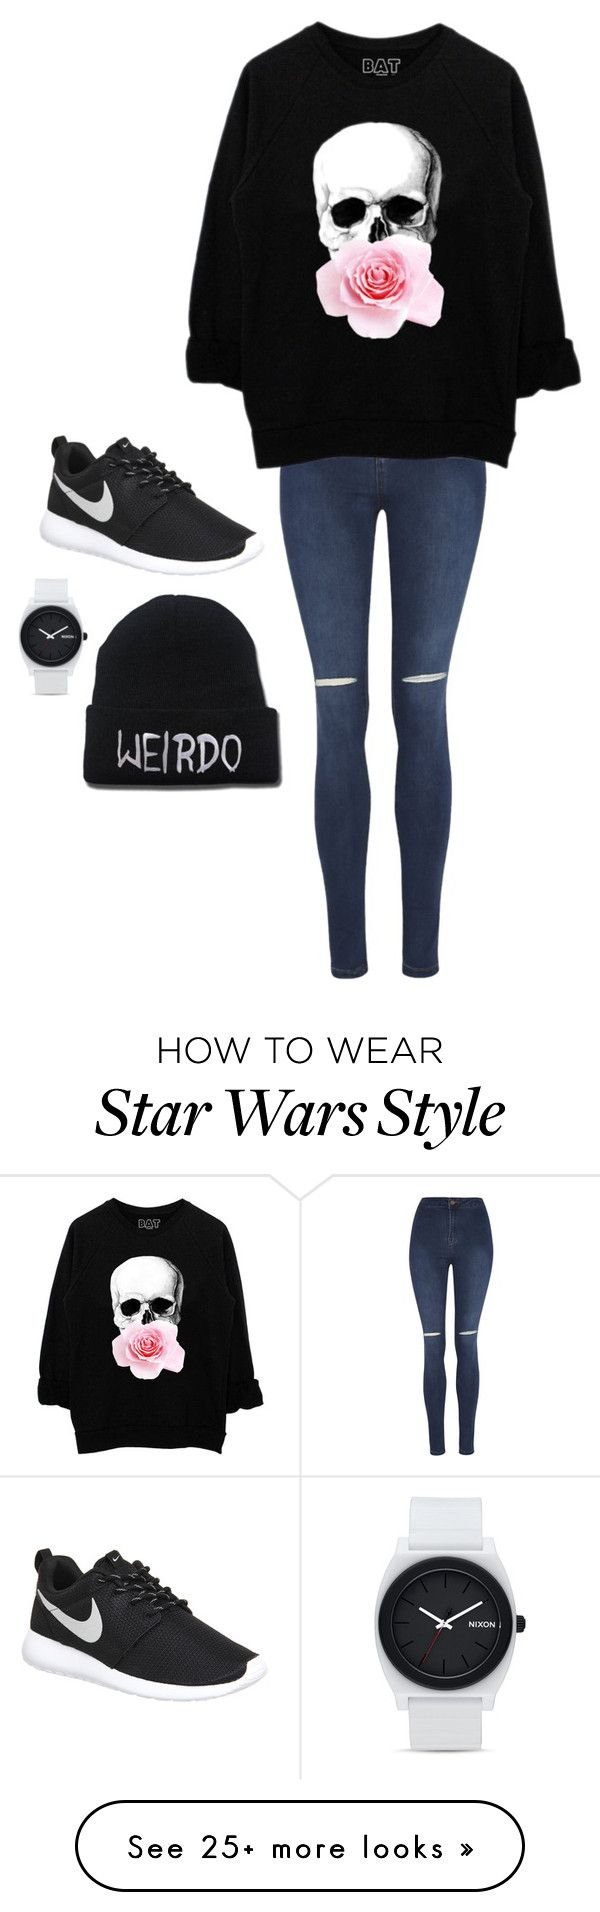 """Untitled #2686"" by if-i-were-famous1 on Polyvore featuring George, NIKE, Nixon, women's clothing, women's fashion, women, female, woman, misses and juniors"